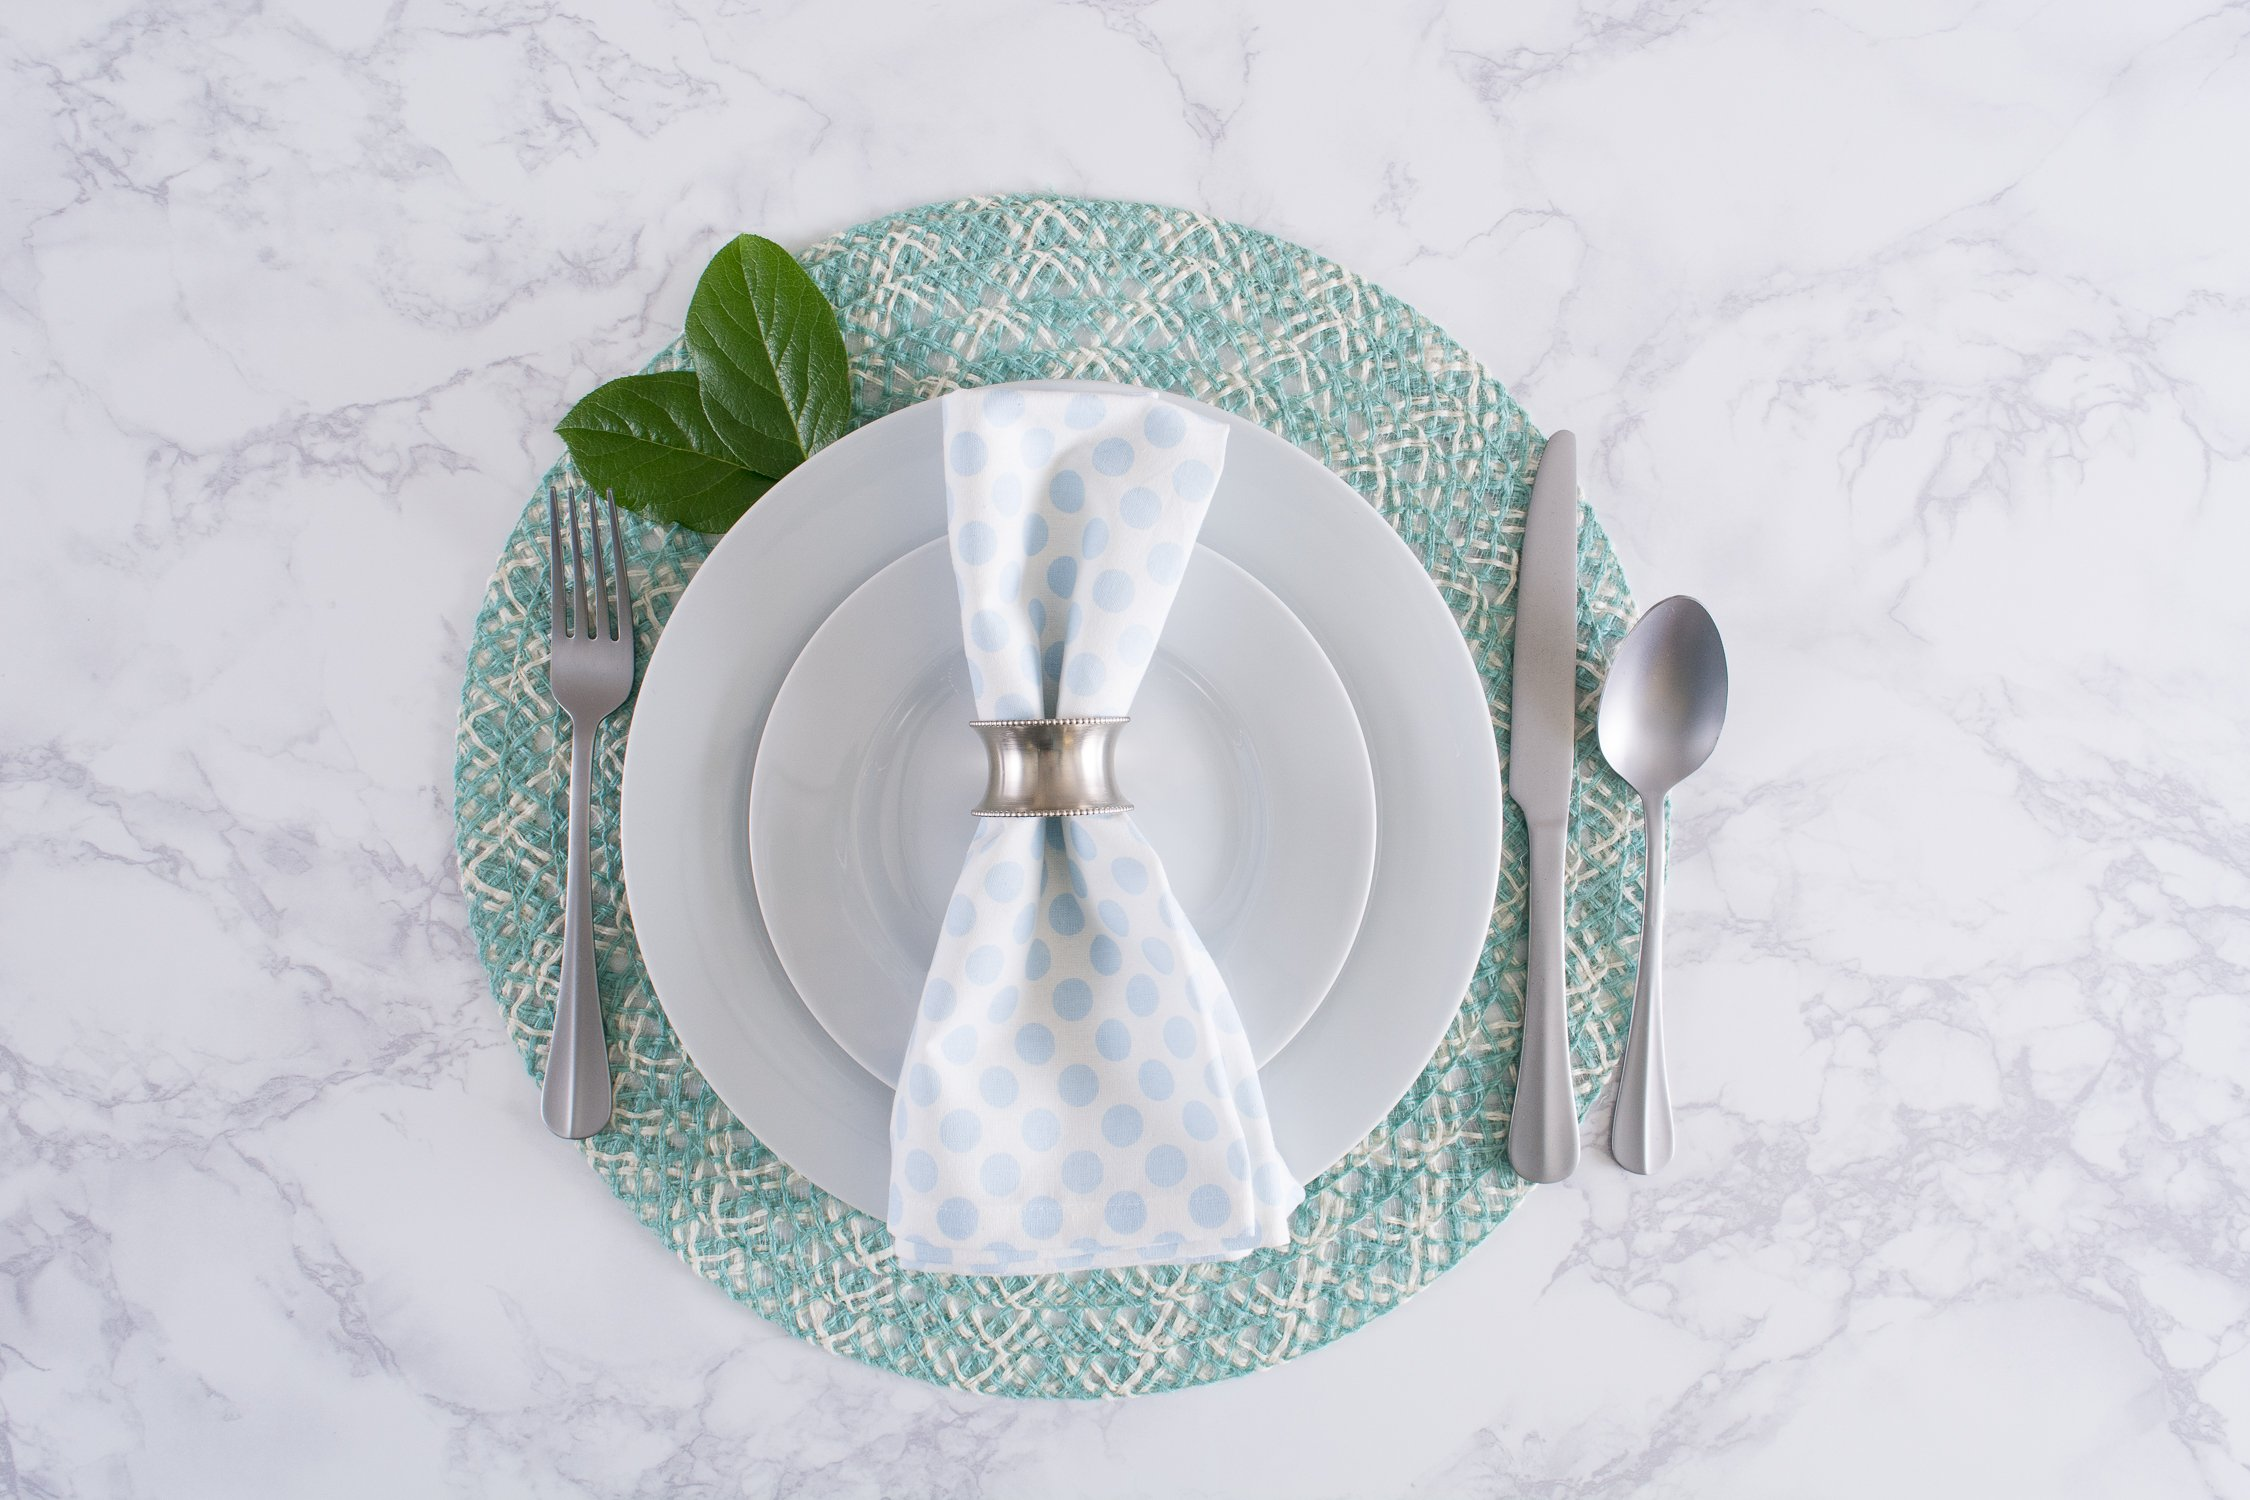 DII Round Woven, Indoor & Outdoor Braided Placemat or Charger, Set of 6, Garden Spa by DII (Image #3)